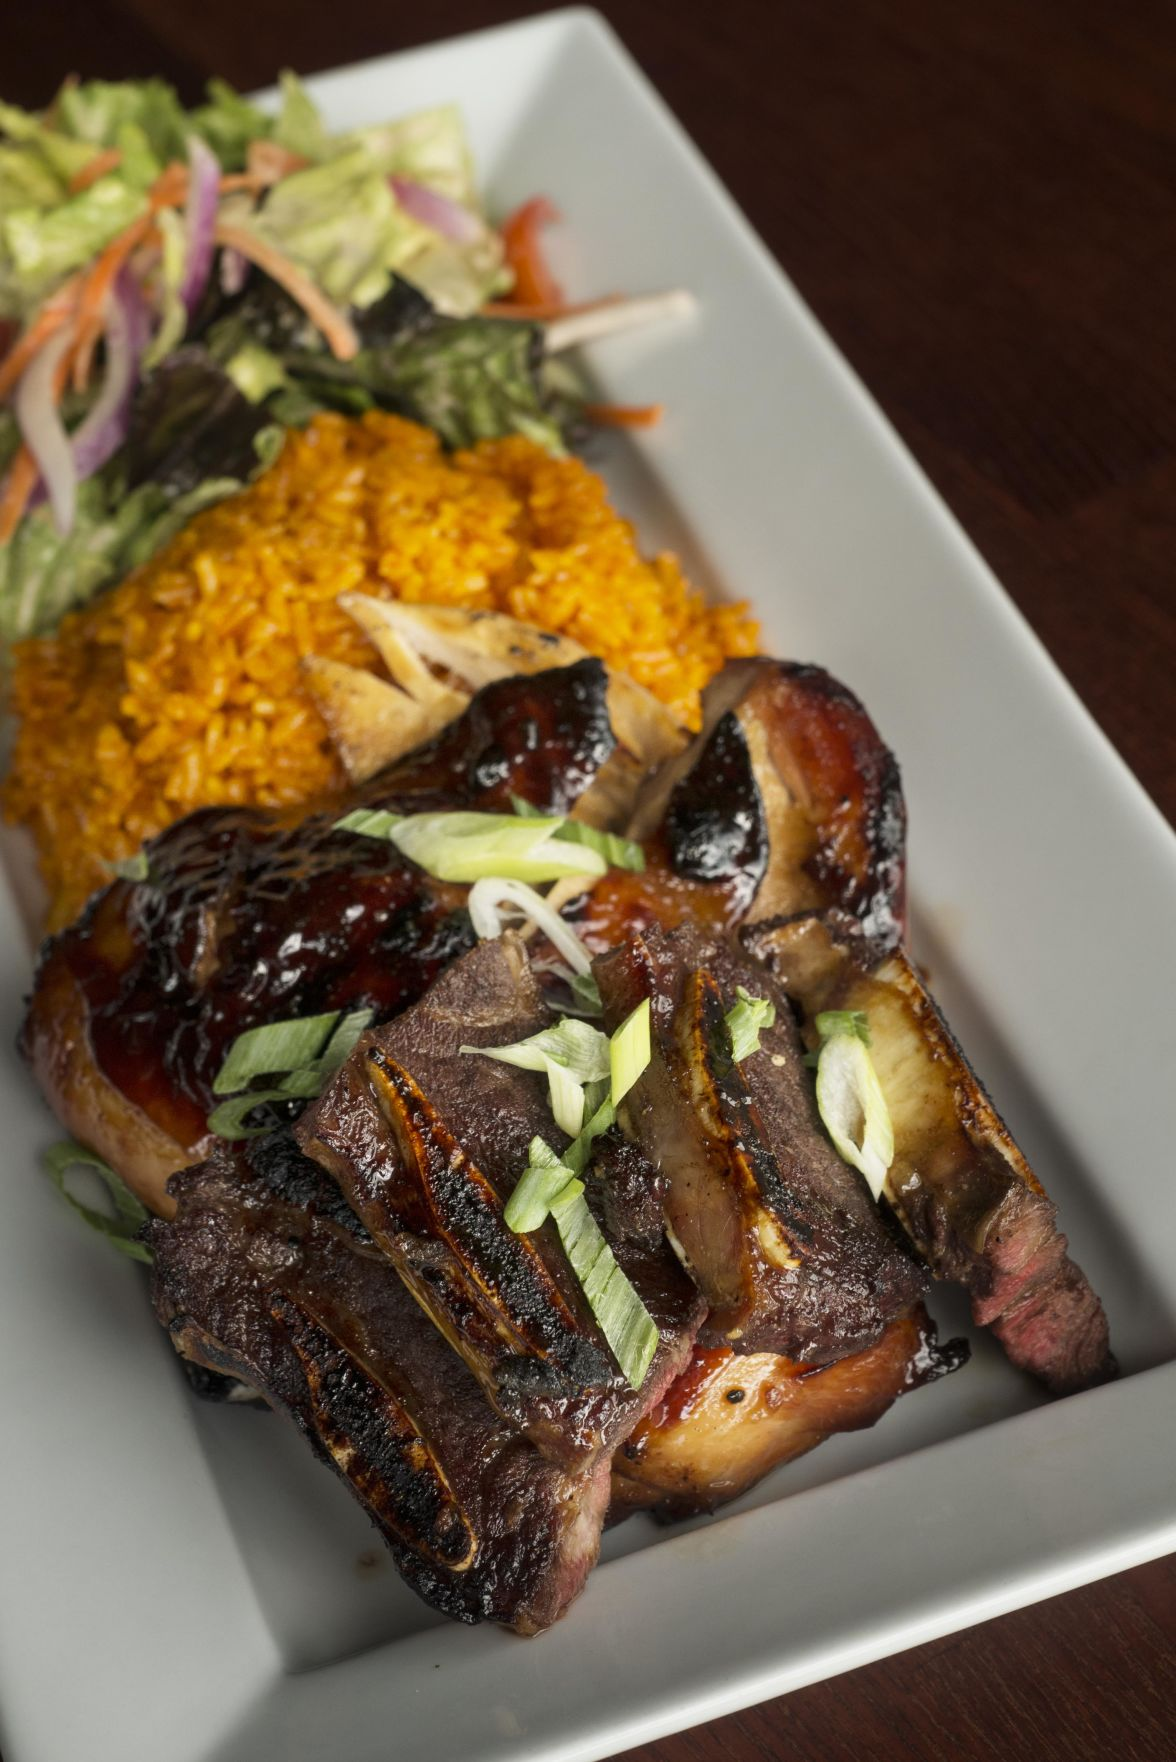 Papa's pleases with CHamoru classics, value prices